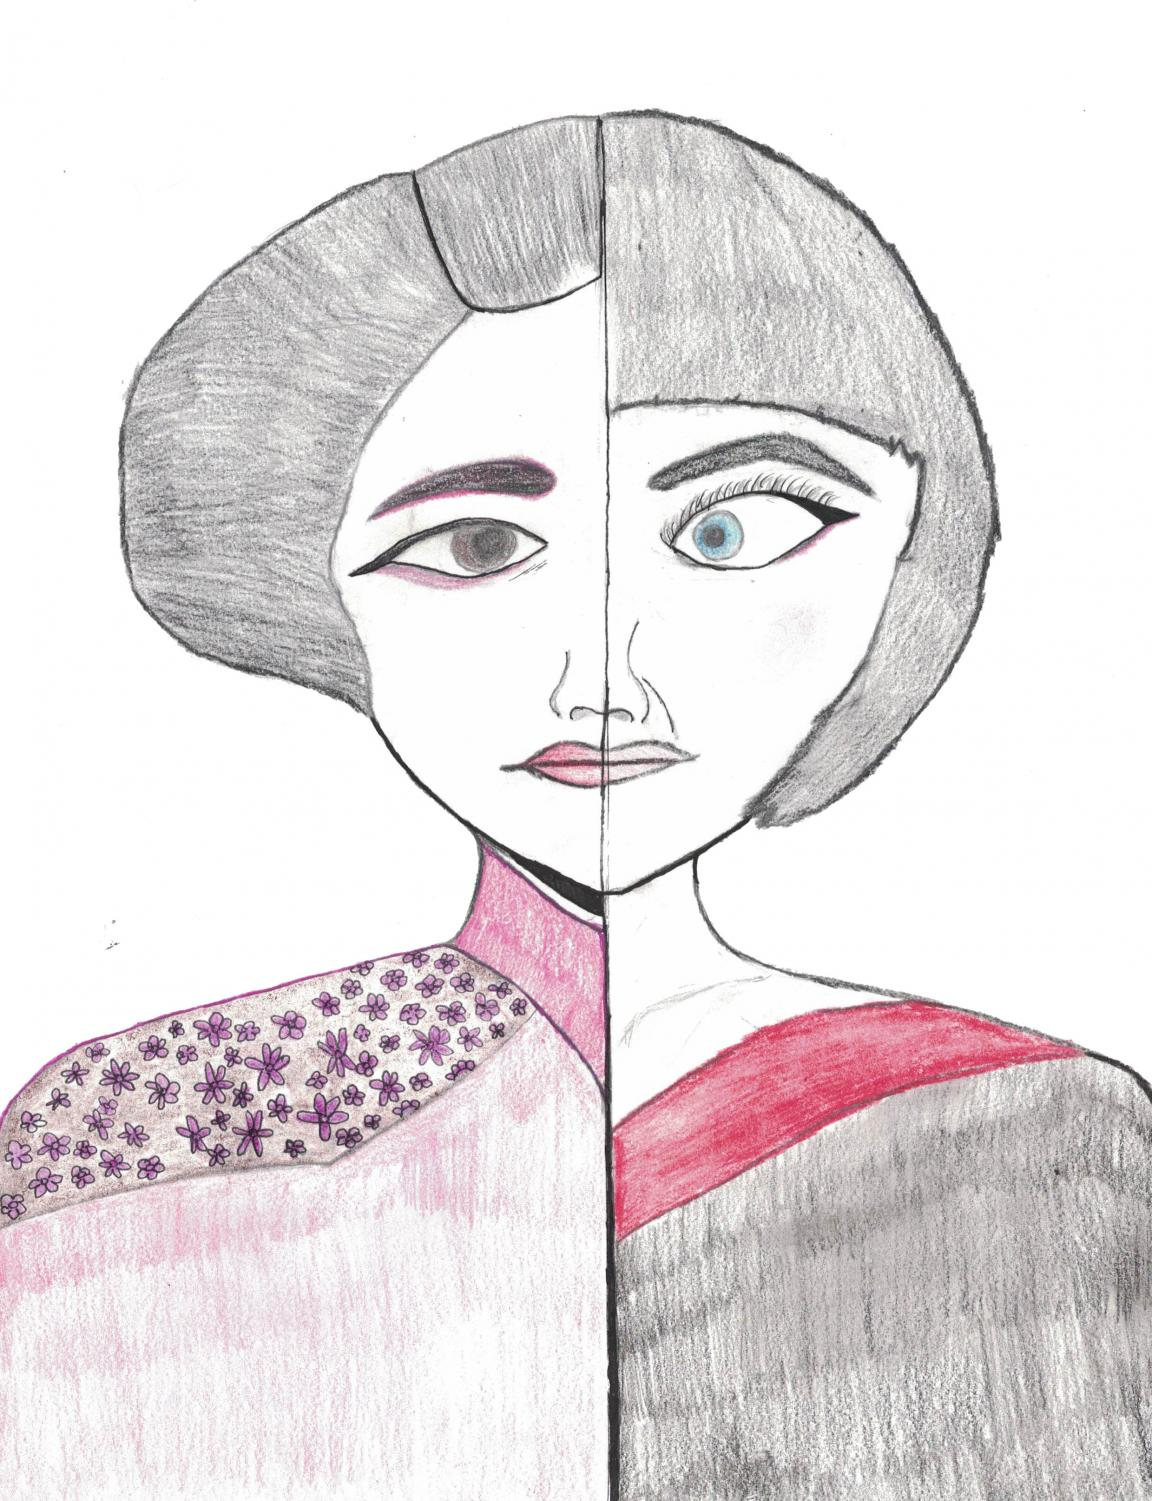 Depiction of a geisha (L) and a culturally offensive costume (R)